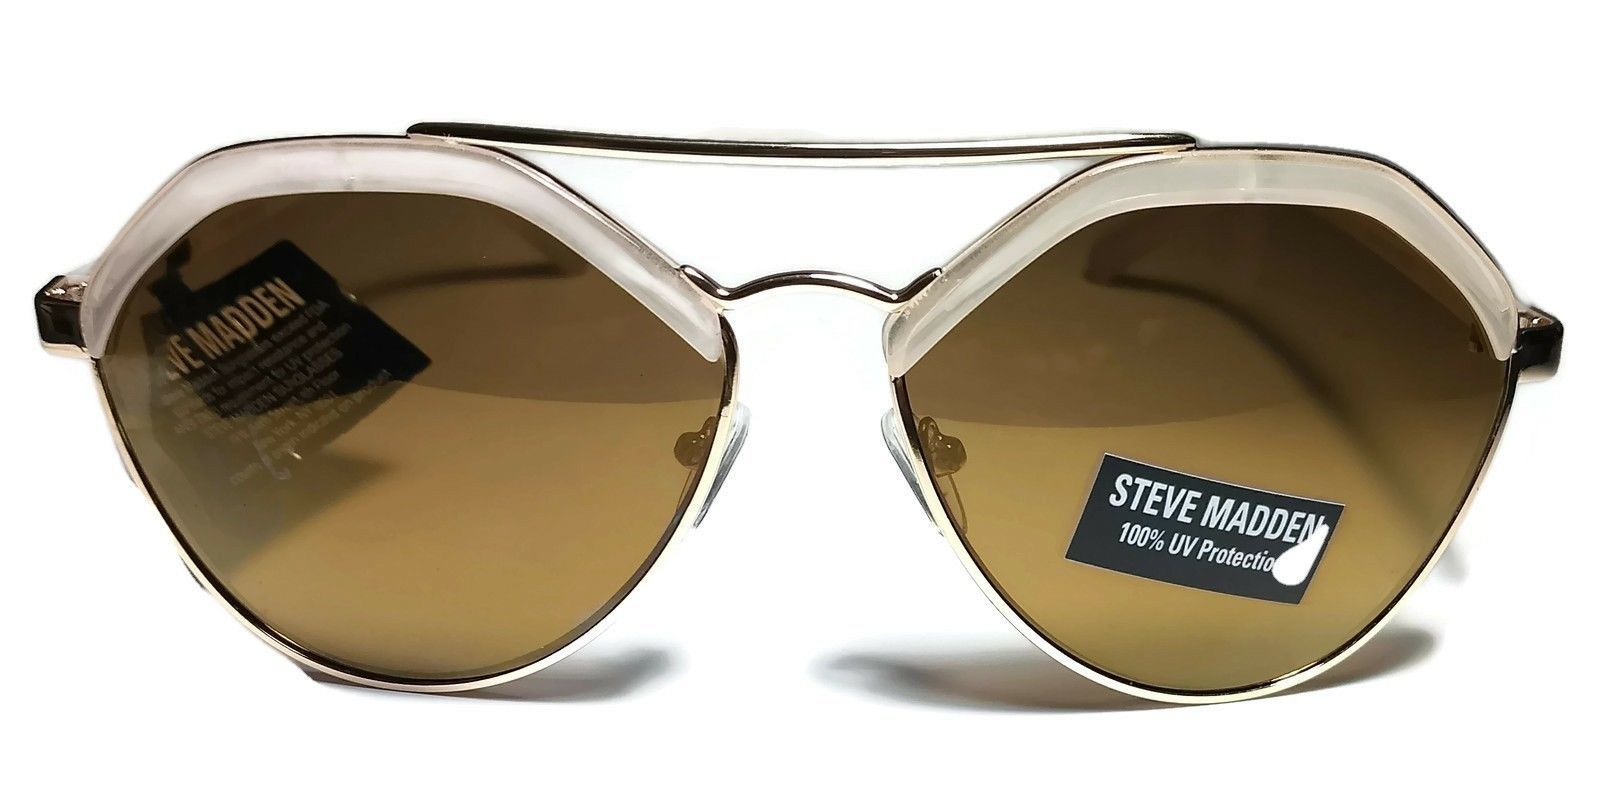 c340d8a6e62e Steve Madden Gold Aviator Sunglasses « One More Soul